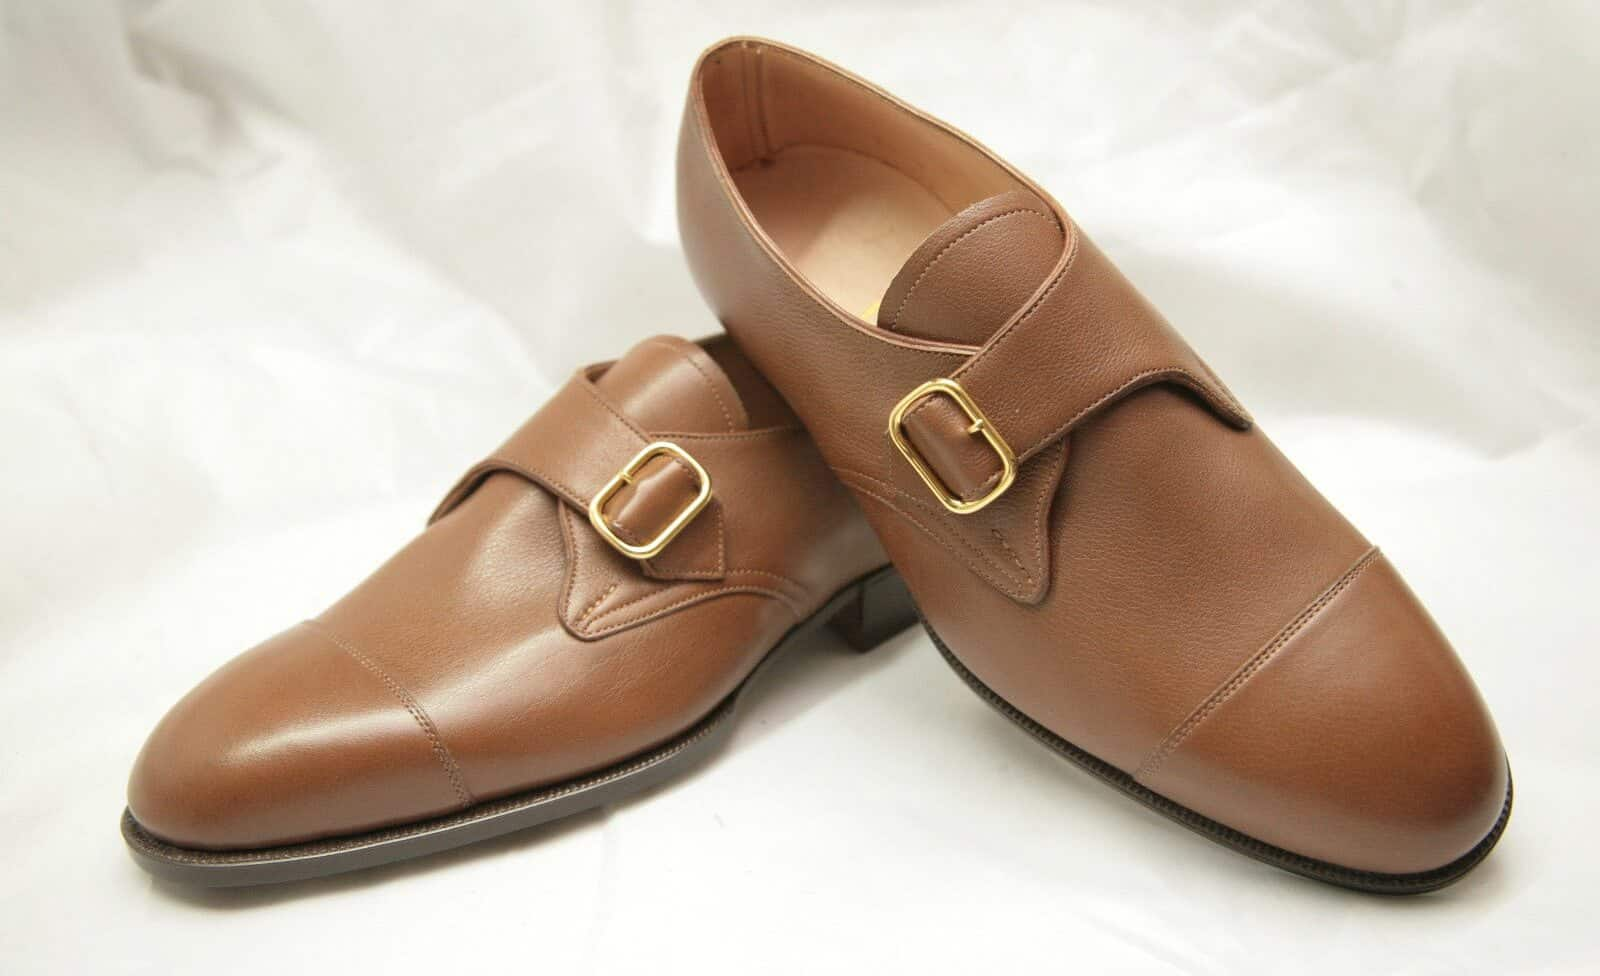 History of Monk Strap Shoes. As with many clothing items, the exact origins of the monk strap are unclear. According to some, it was aptly named, after a monk from the Alps who created a special form of sandals in the 15th century.